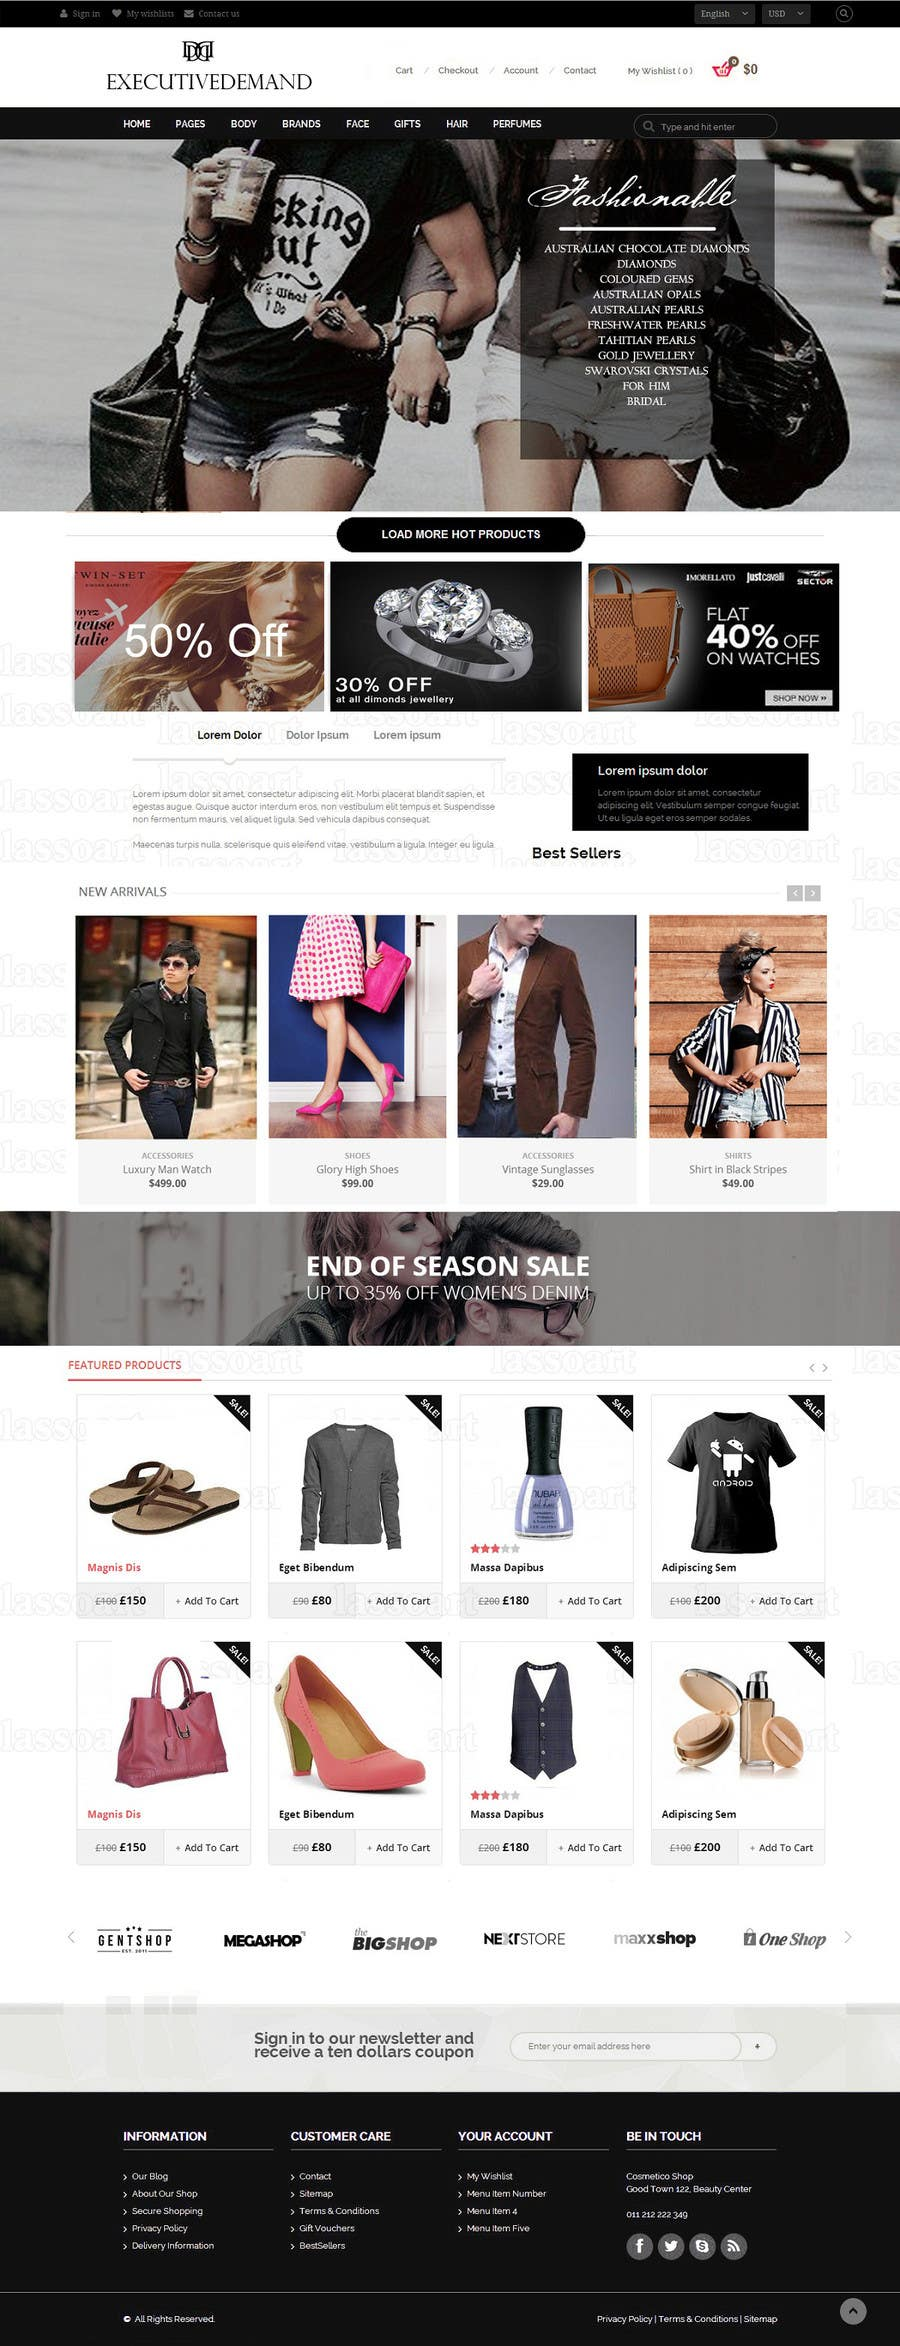 Konkurrenceindlæg #                                        7                                      for                                         Build an Online Store for Luxury Retail